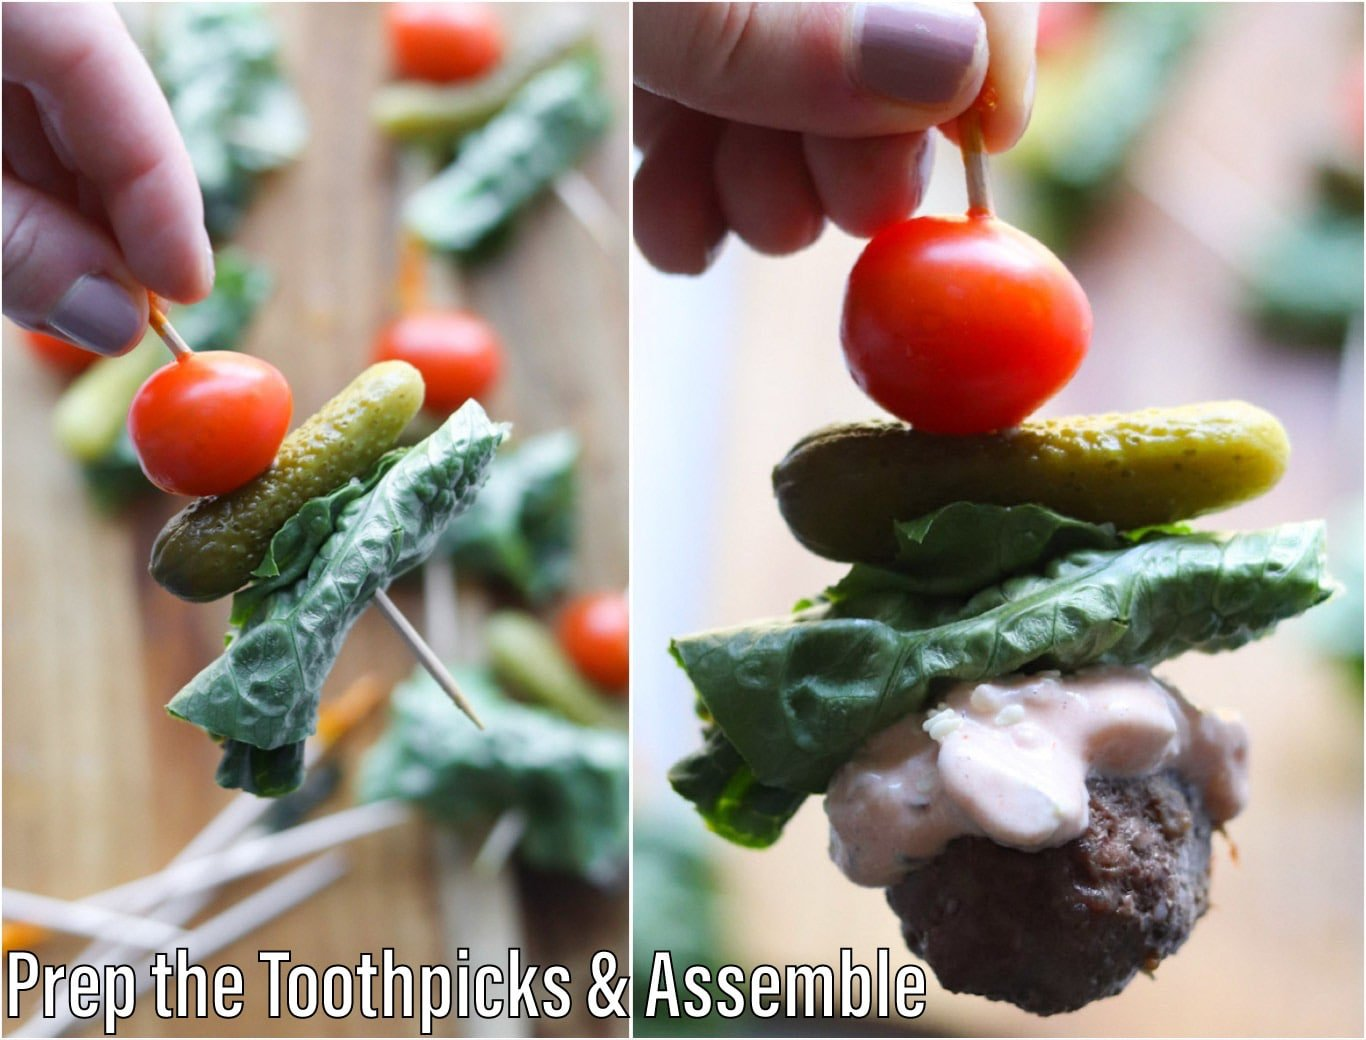 A collage showing how to prep the toothpicks by putting the tomato on first, then the pickle, then the lettuce.